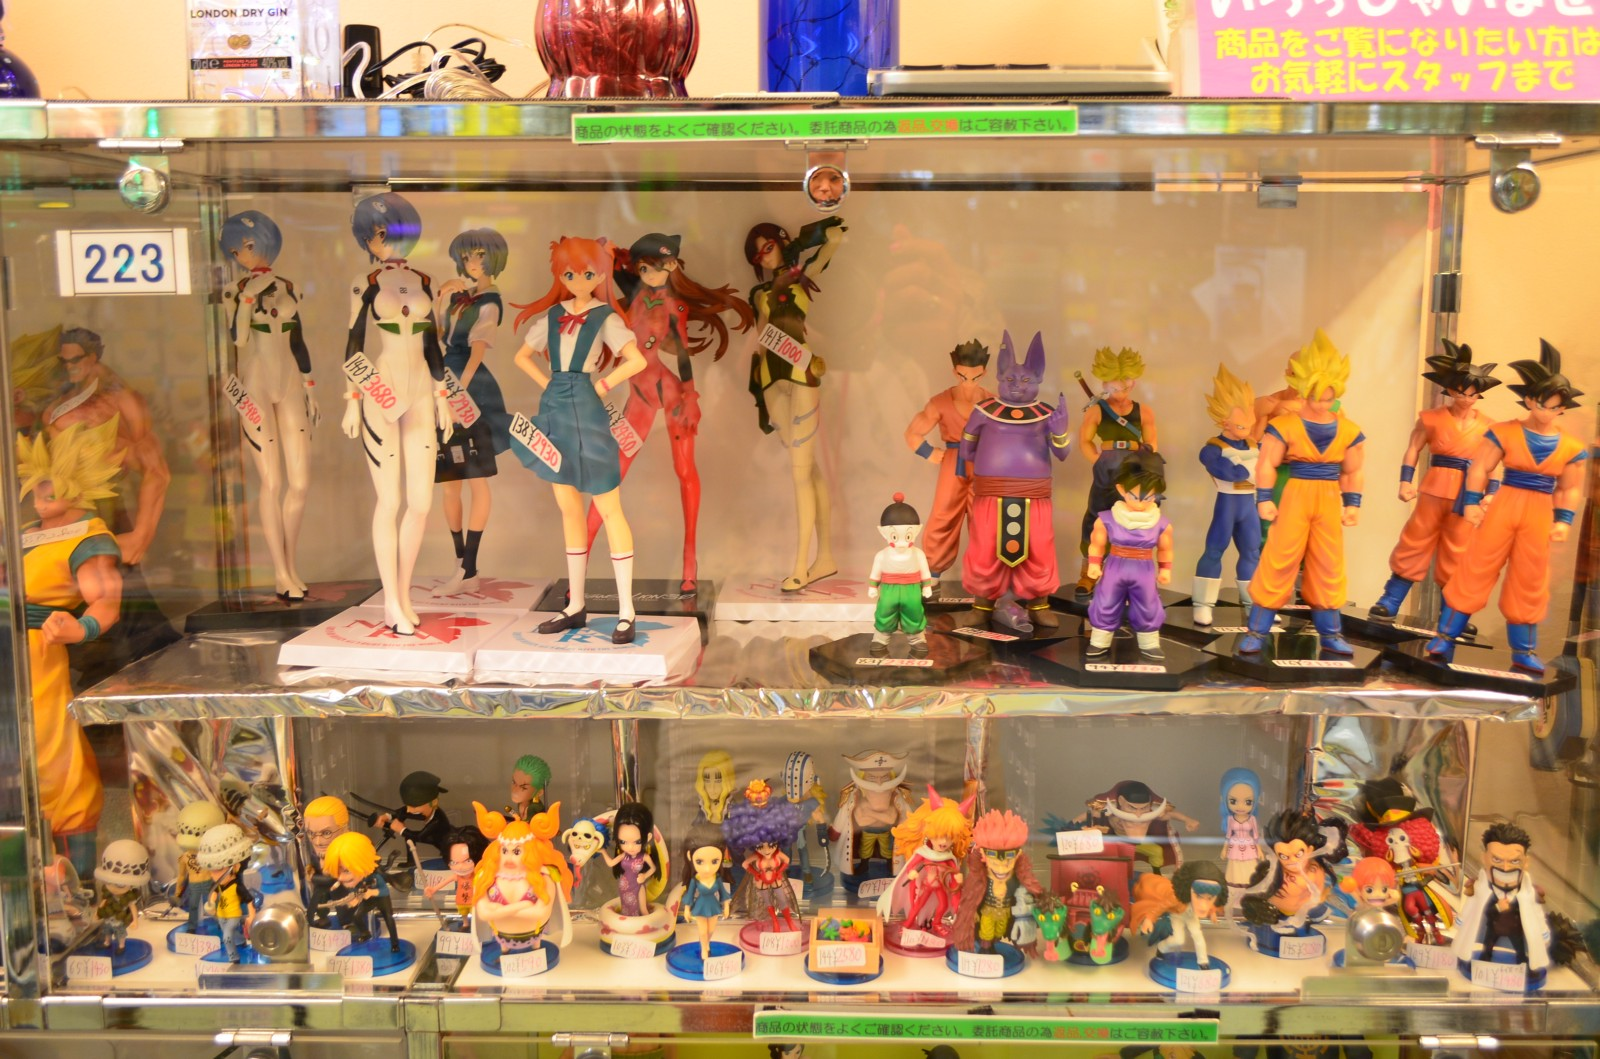 Anime figures sold at Radio Center